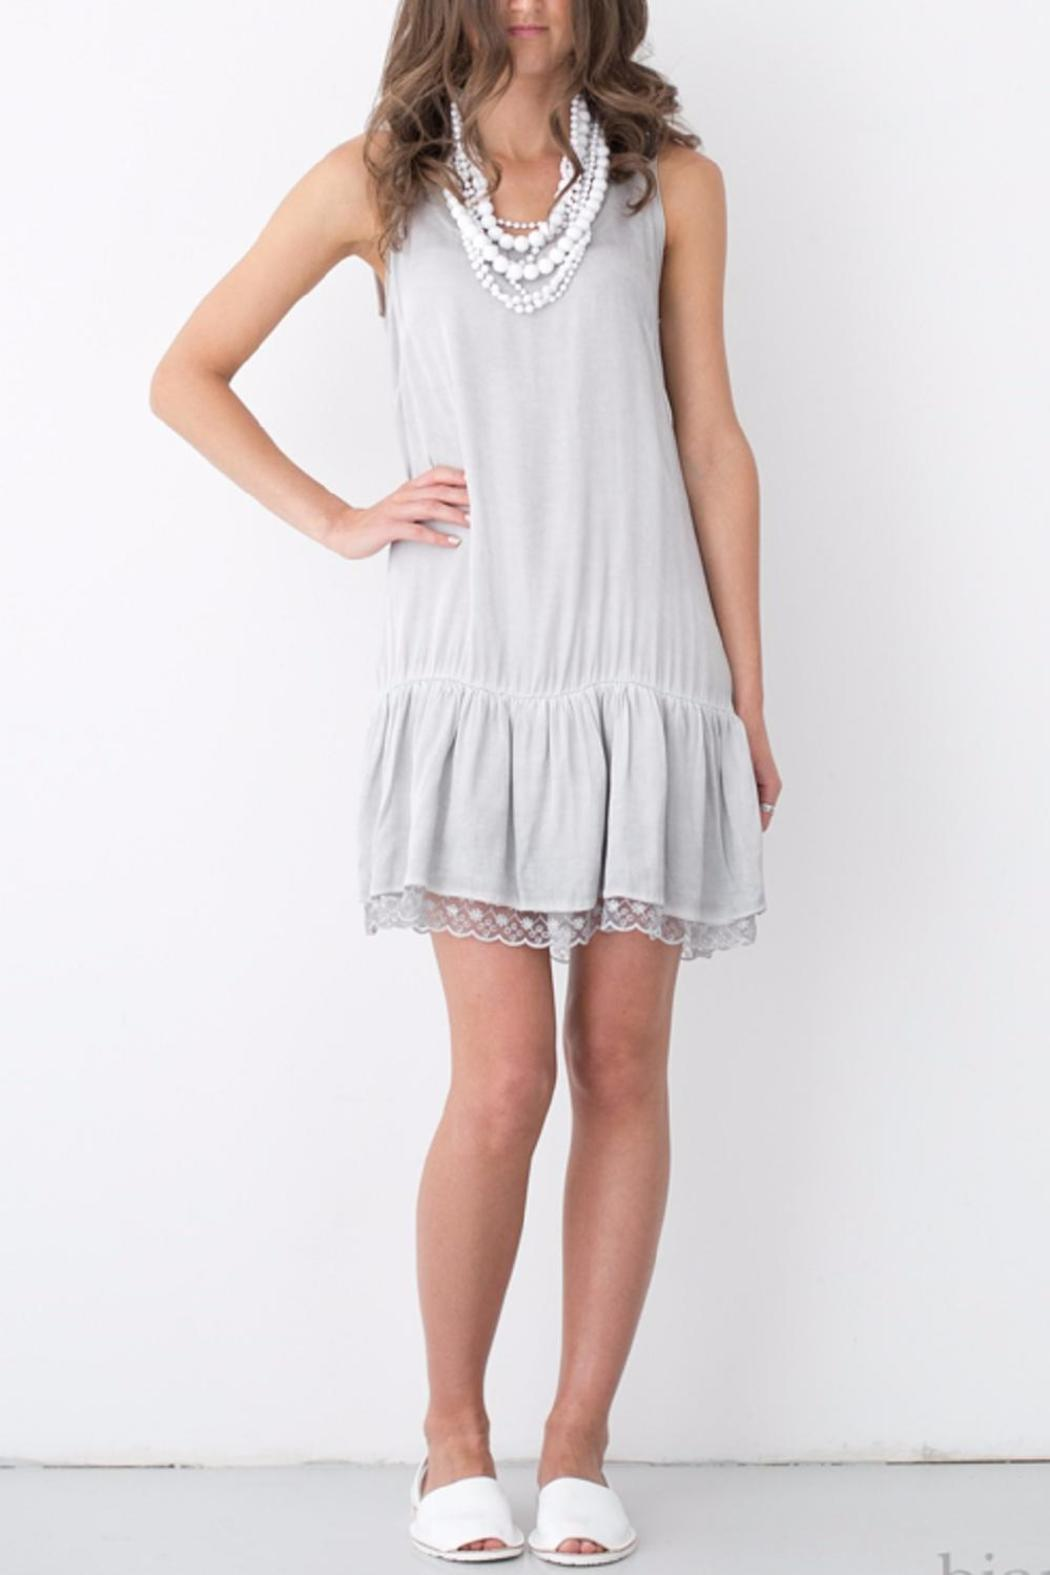 Bianco Concept Store Sundress With Lace - Main Image